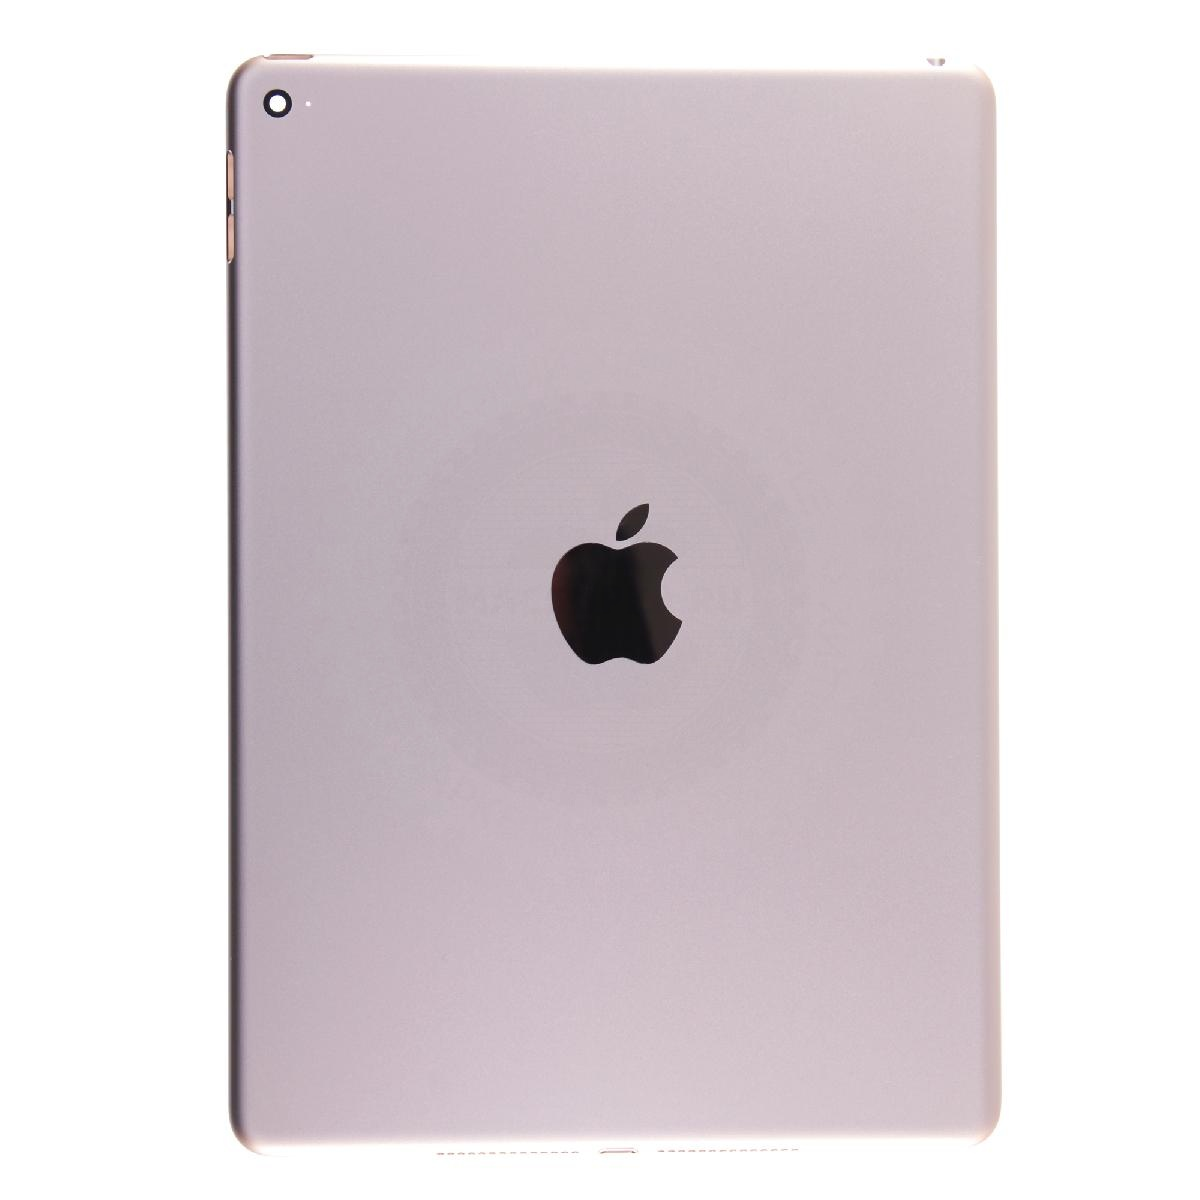 Купить корпус для ipad air 2 wi-fi gold